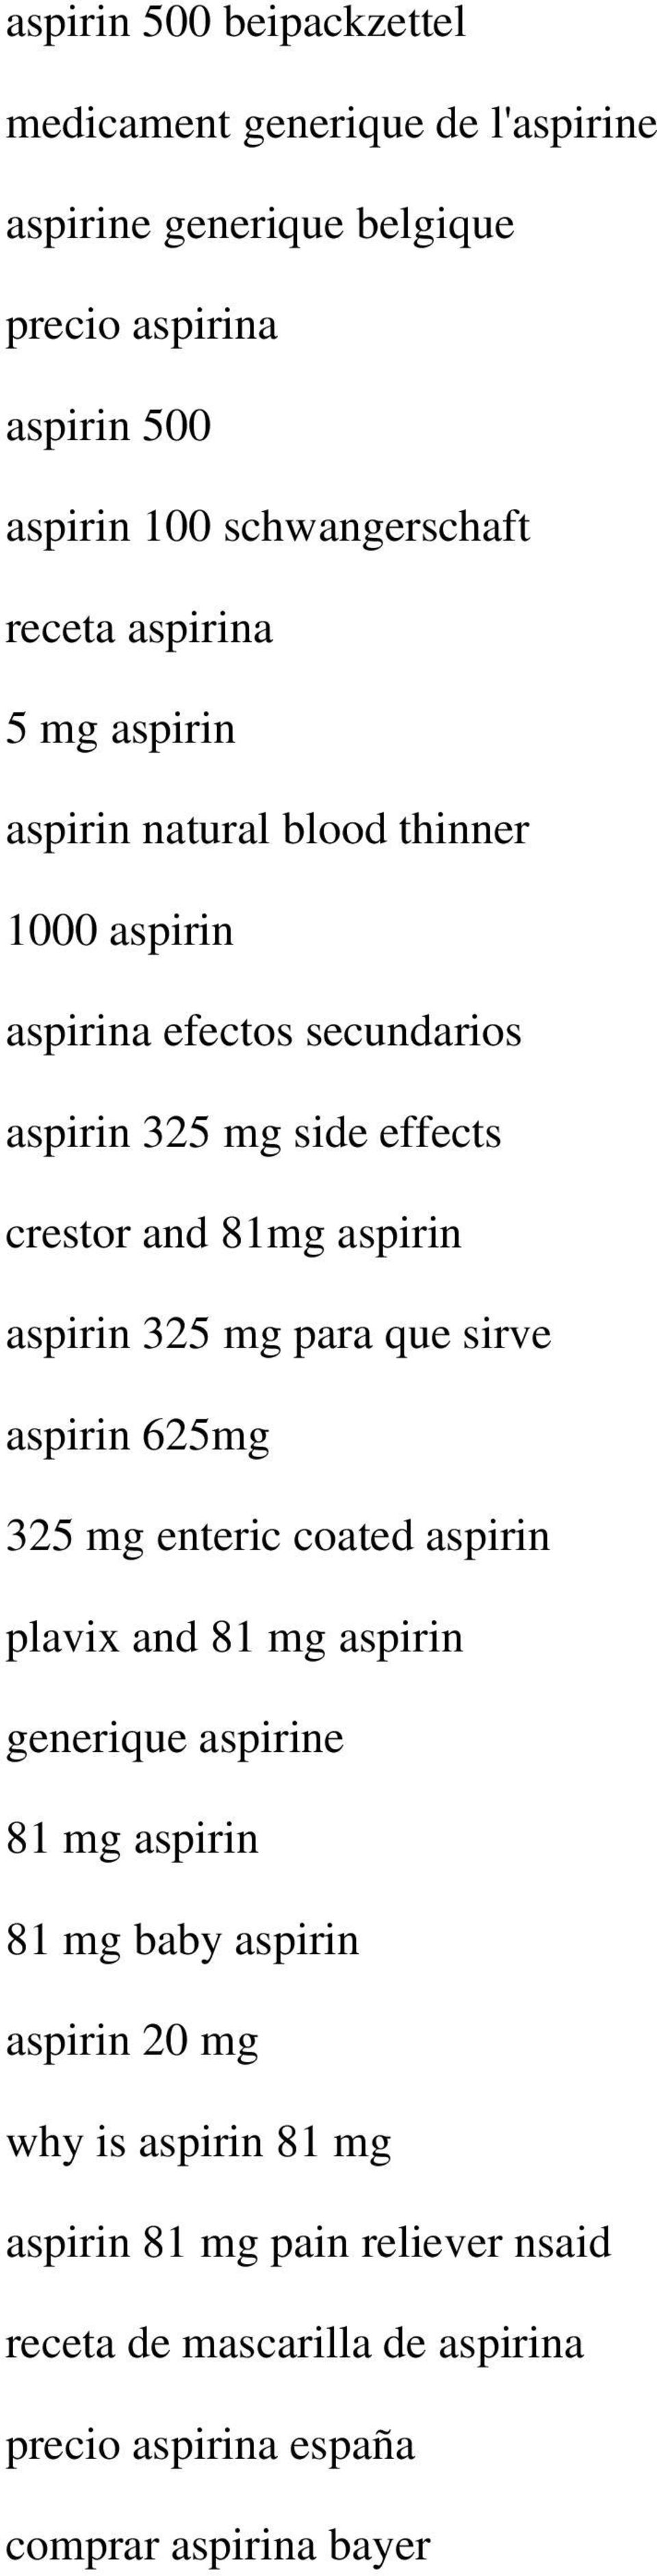 aspirin aspirin 325 mg para que sirve aspirin 625mg 325 mg enteric coated aspirin plavix and 81 mg aspirin generique aspirine 81 mg aspirin 81 mg